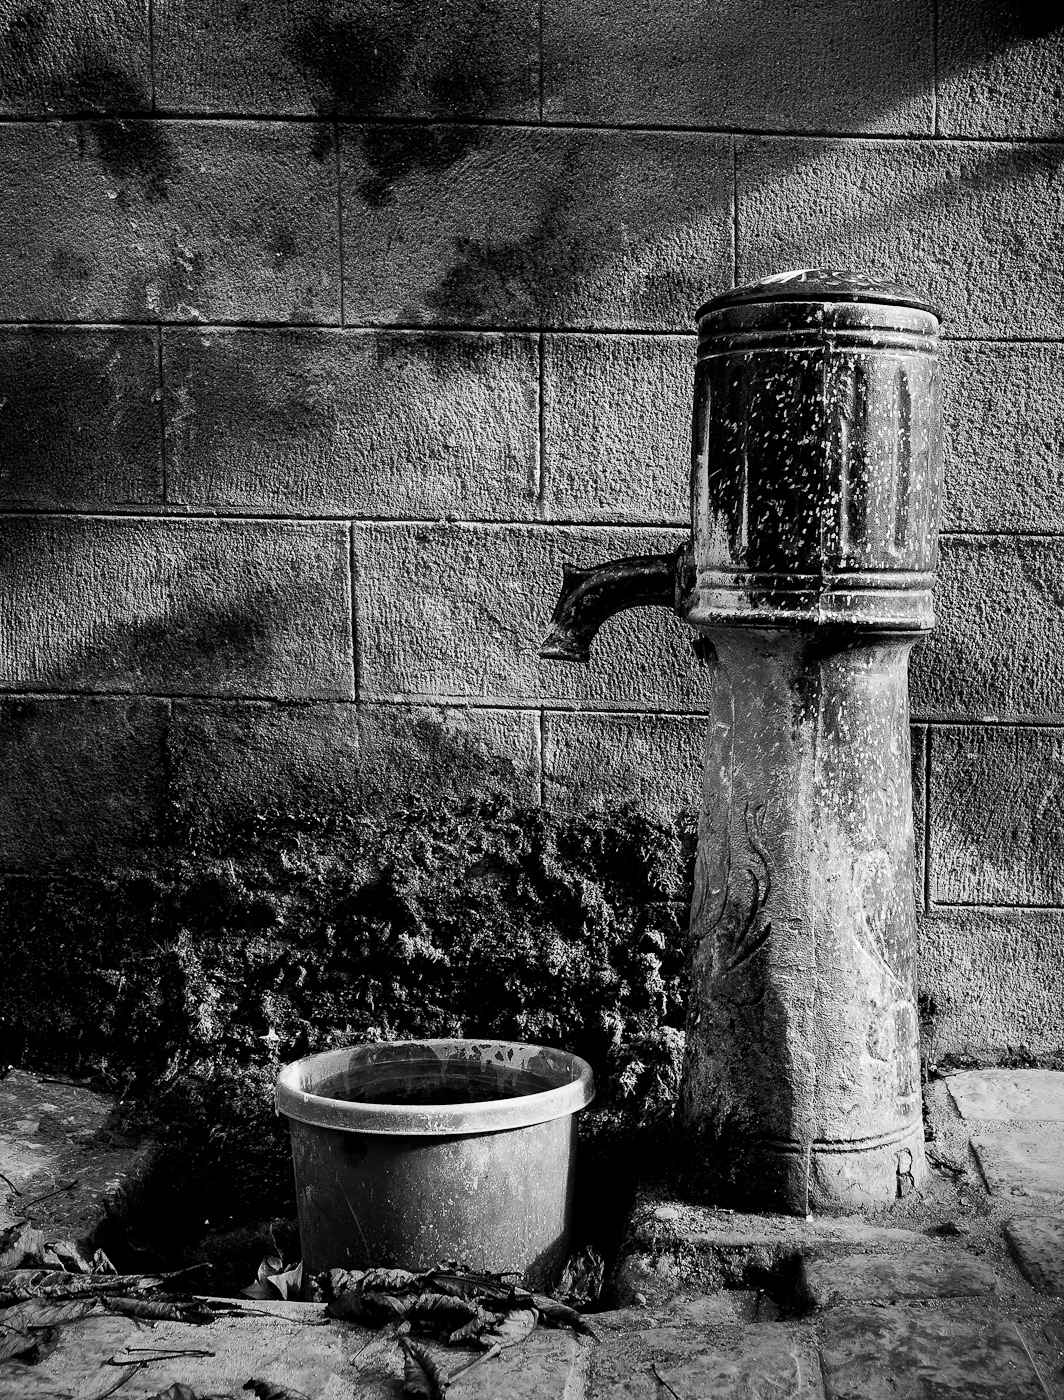 A village fountain shot in B&W